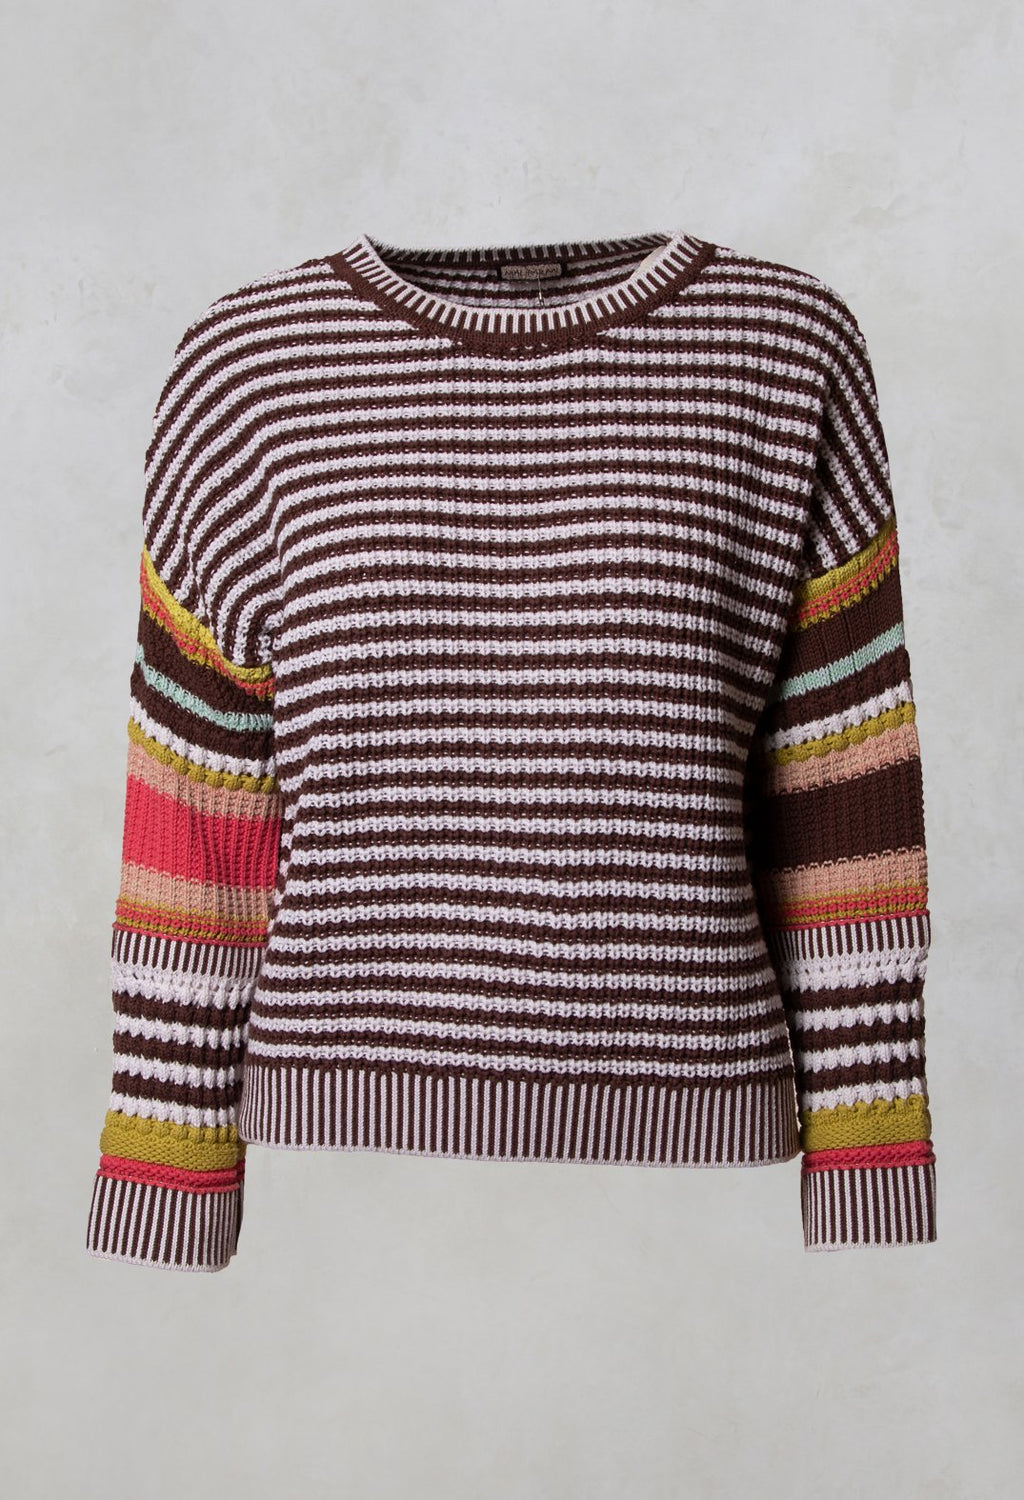 Streaked Shirt in Marrone / Multicolour